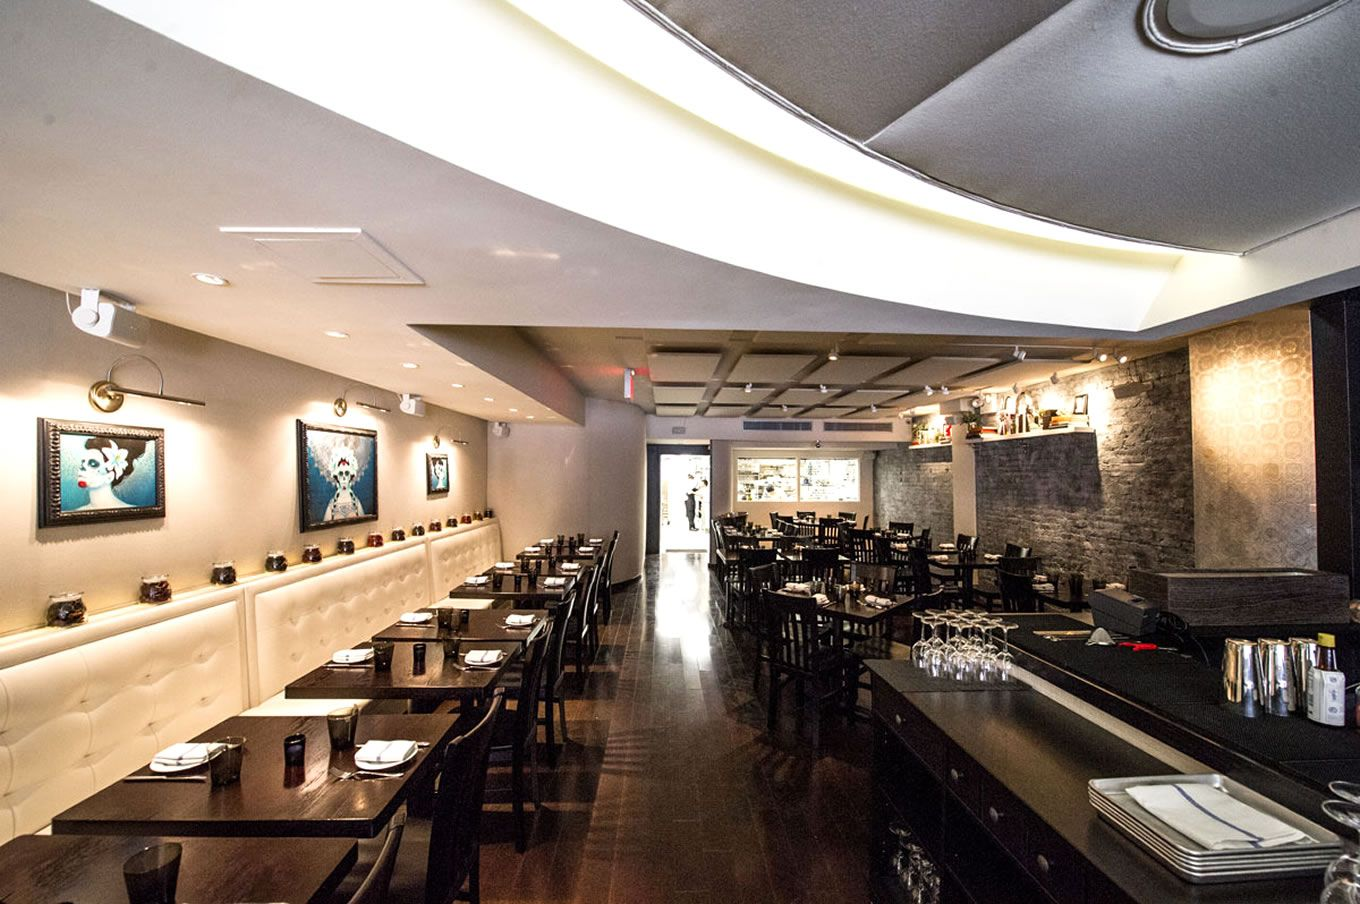 design-inspiration-to-decor-restaurant-contemporary-ceiling-light